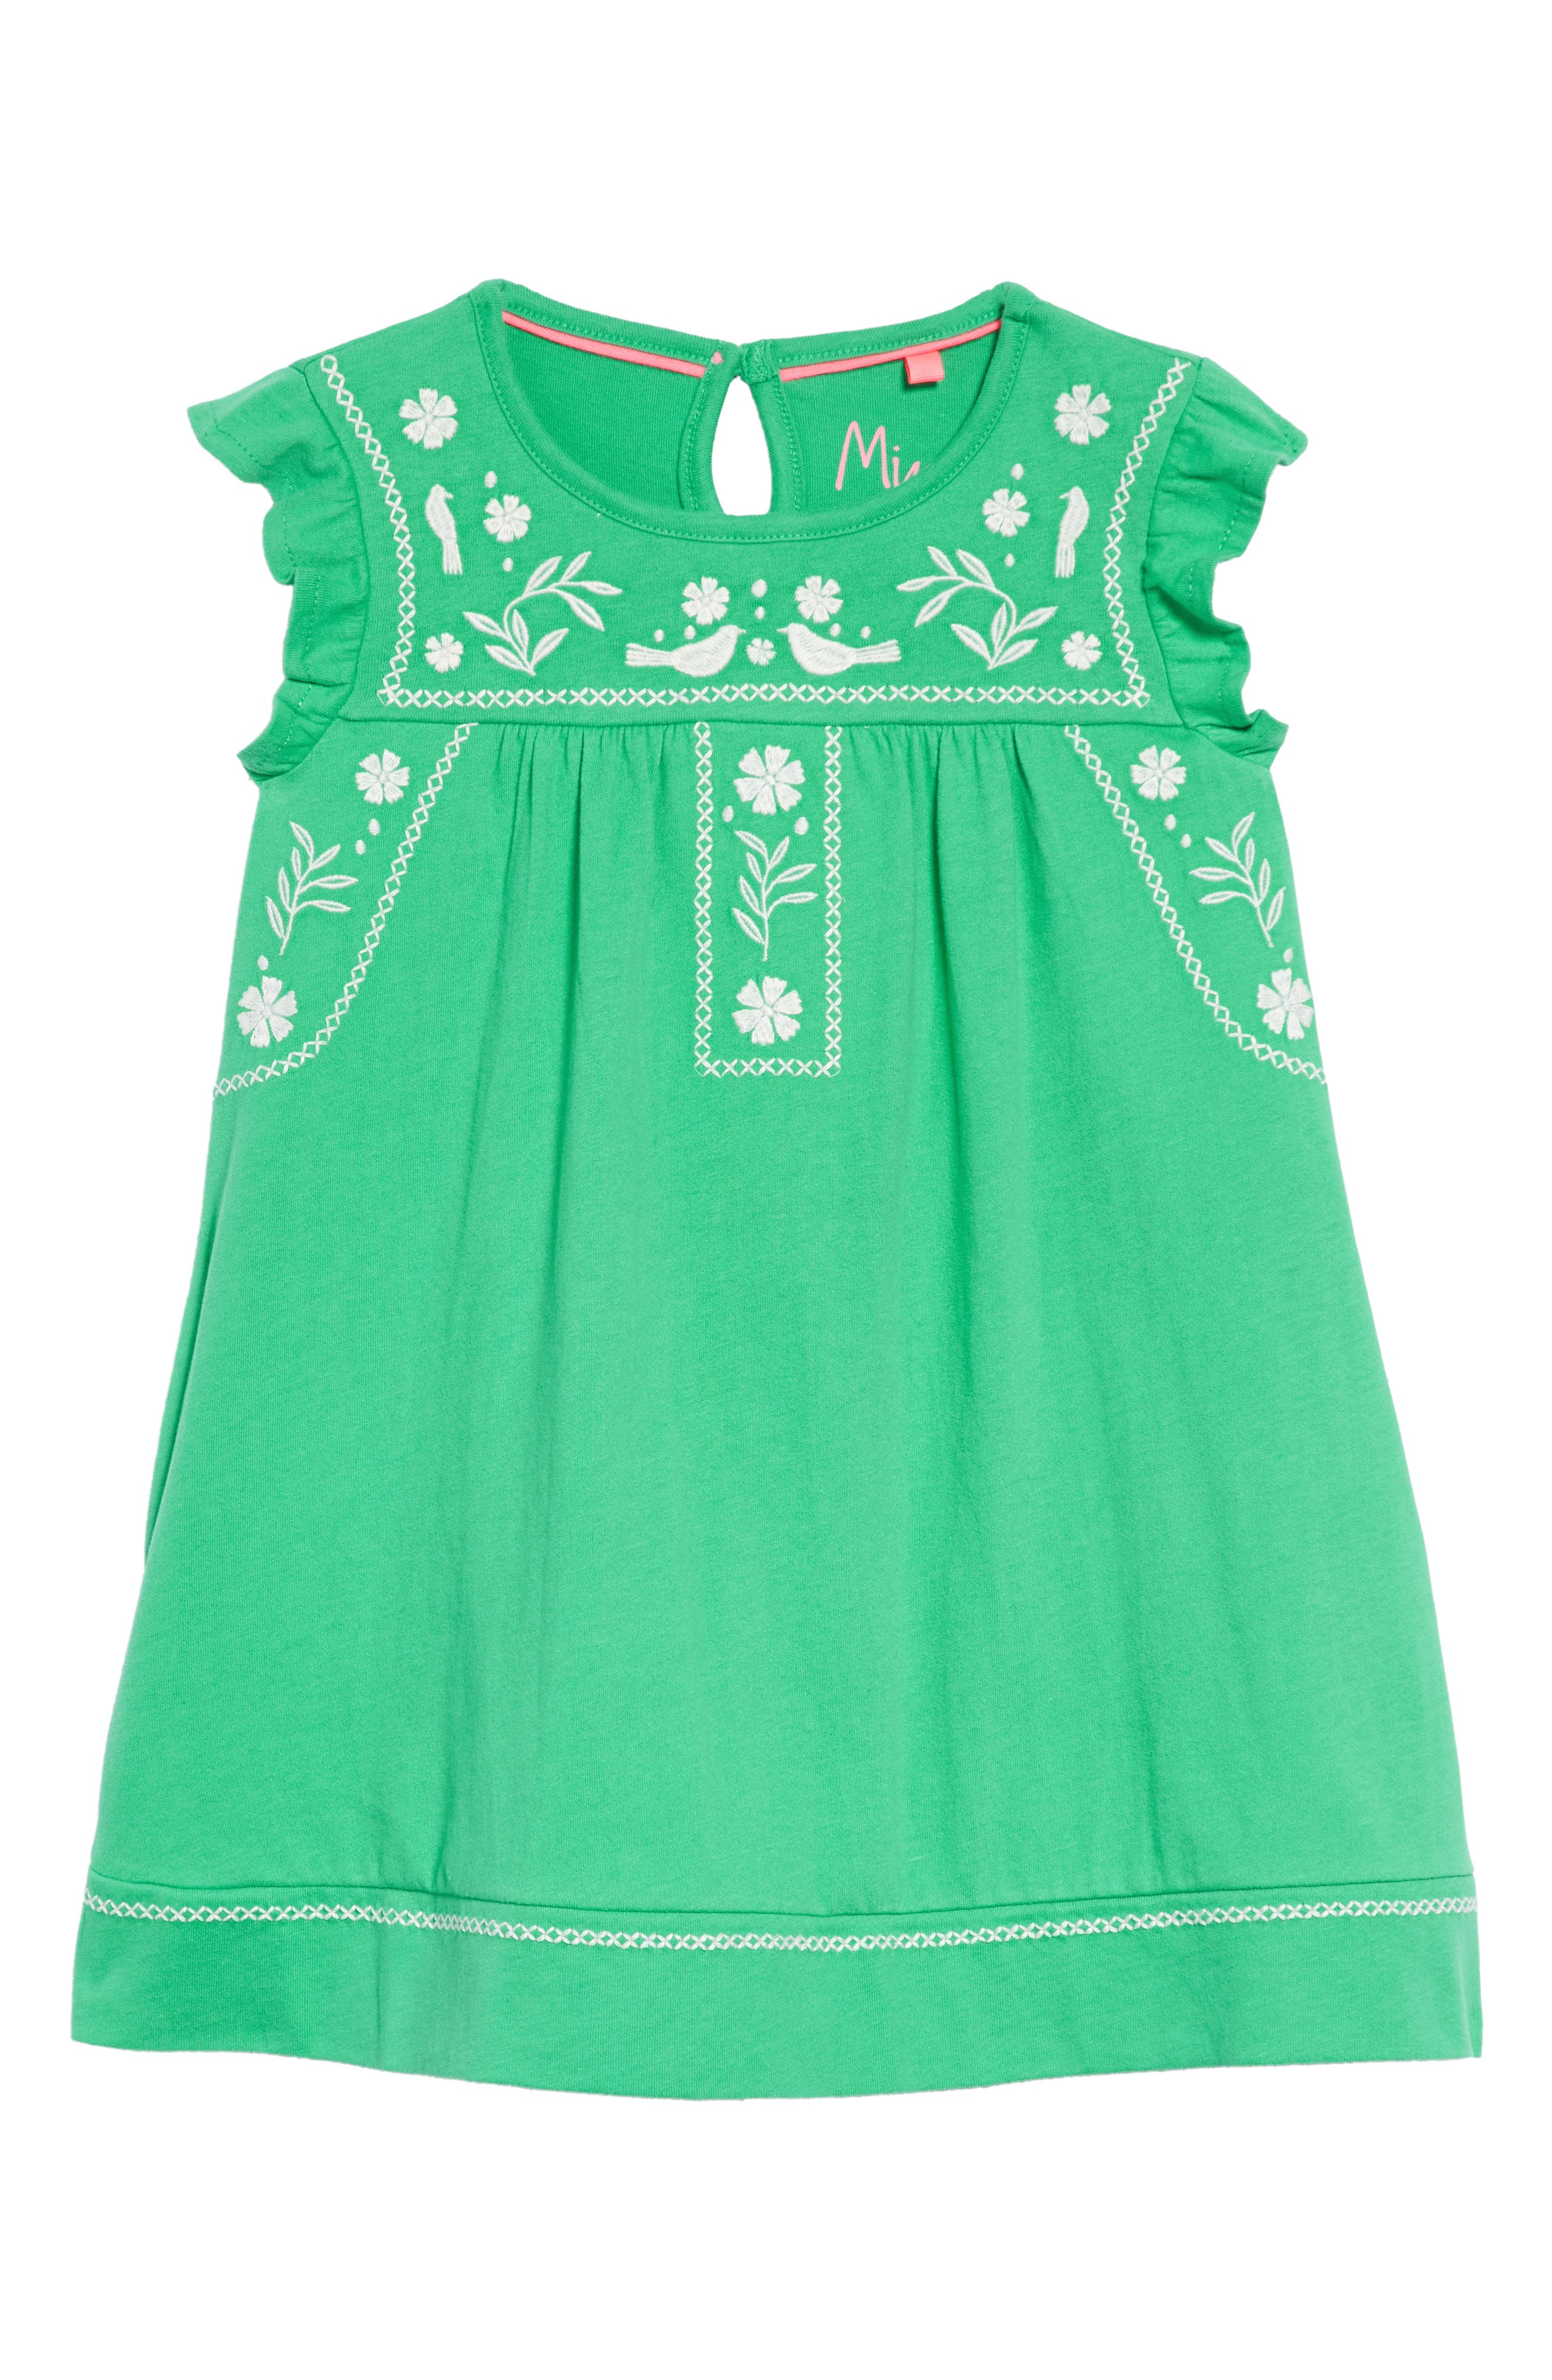 Embroidered Jersey Dress,                             Main thumbnail 1, color,                             Peppermint Green